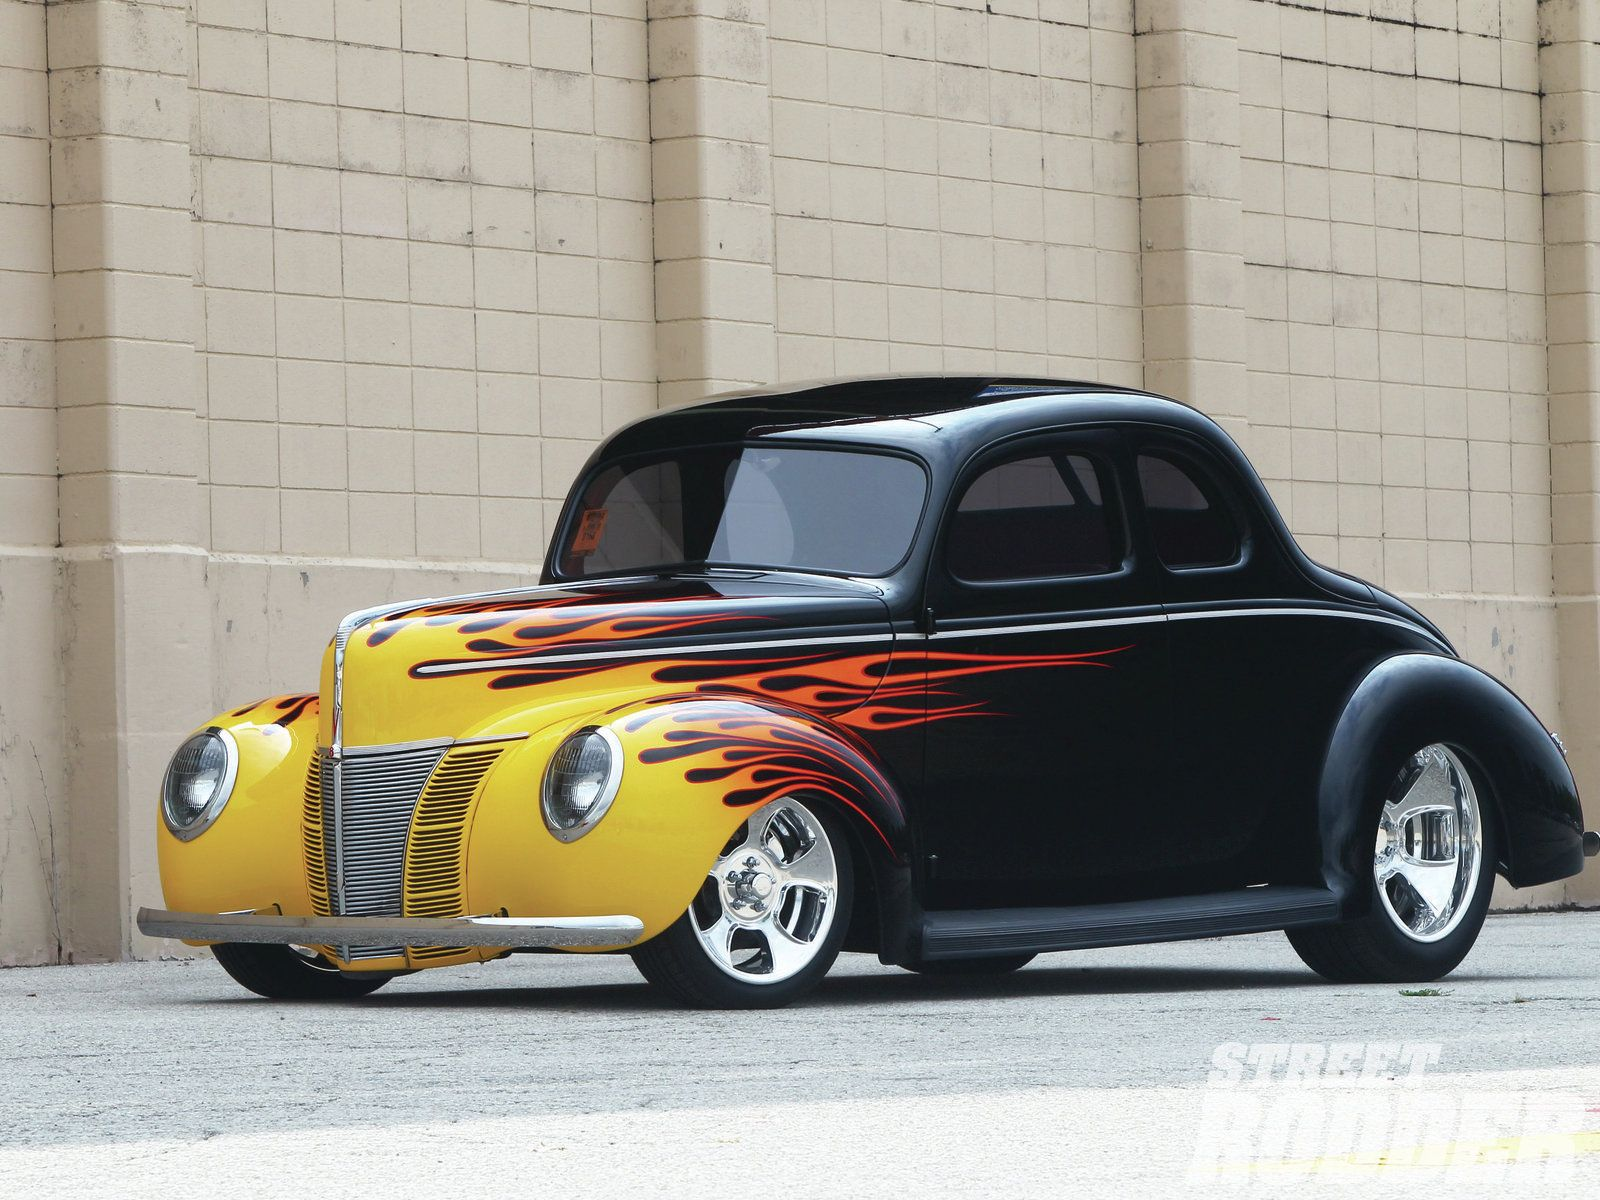 1940 Ford Coupe Retro Hot Rod Rods Wallpaper 1600x1200 95877 Wallpaperup 1940 Ford Coupe 1940 Ford Hot Rods Cars